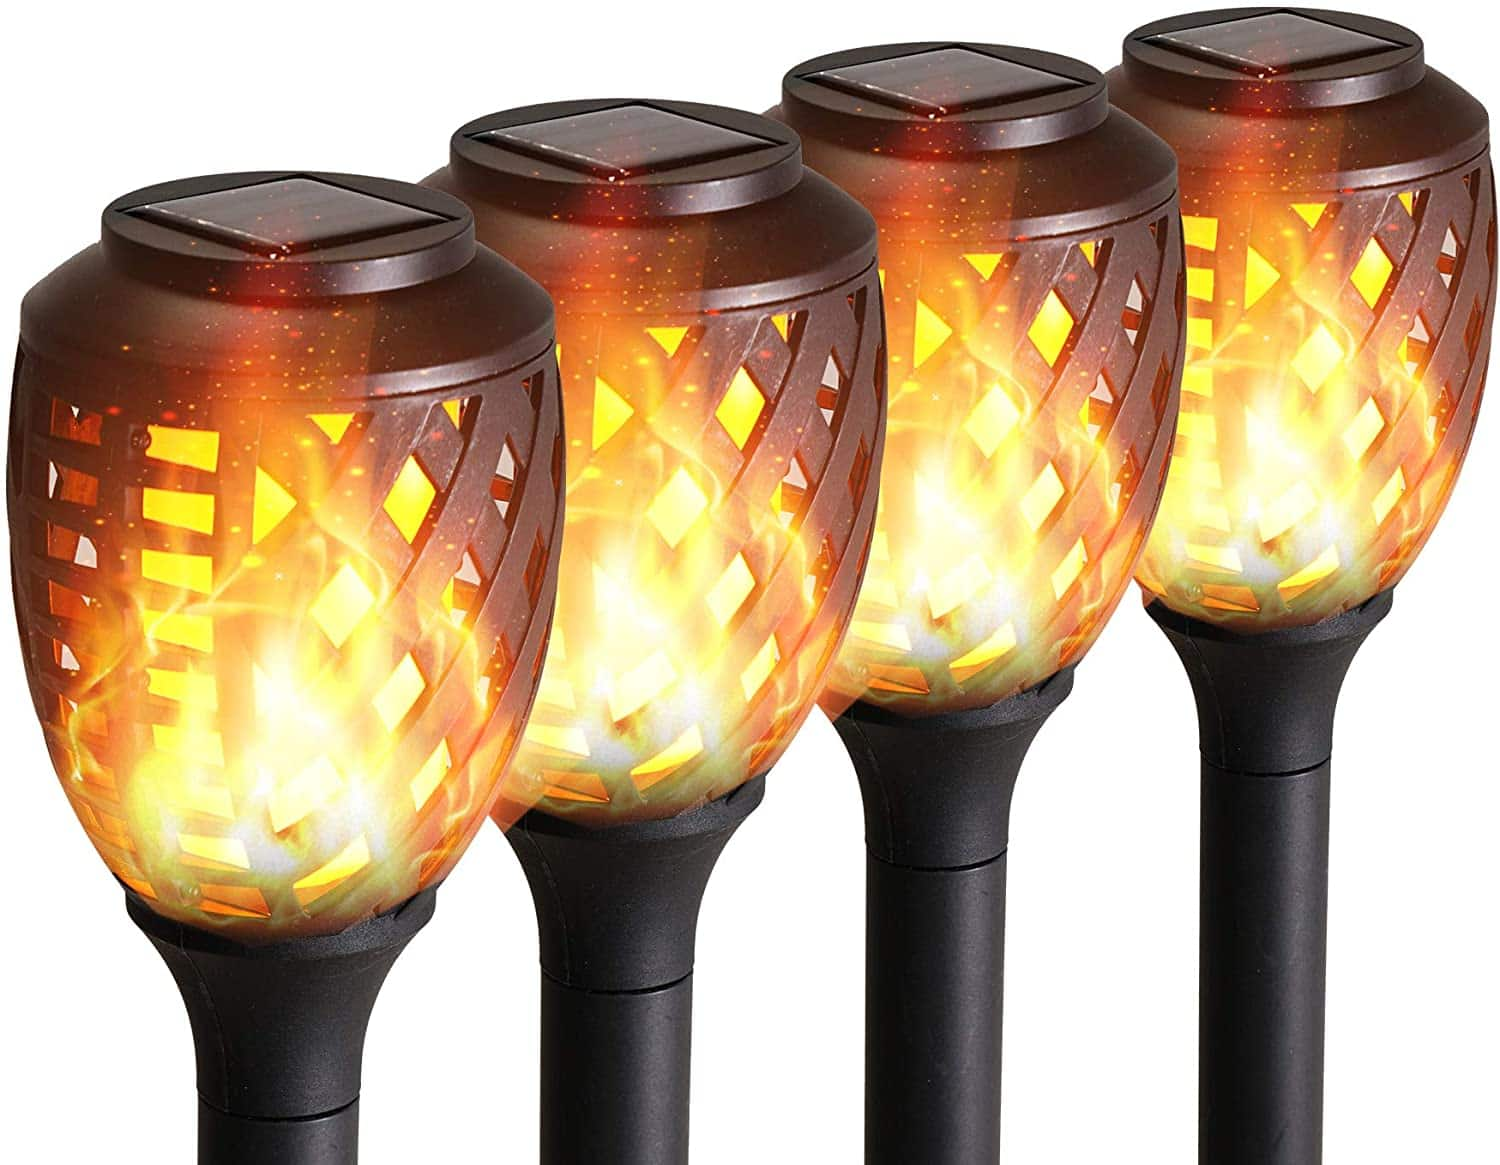 Grand Patio Solar Lights Upgraded Waterproof Flickering Flames Security Torch Light Outdoor Solar Spotlights Landscape Decoration Dusk to Dawn, Amazon 50% off $12.99 Shipped